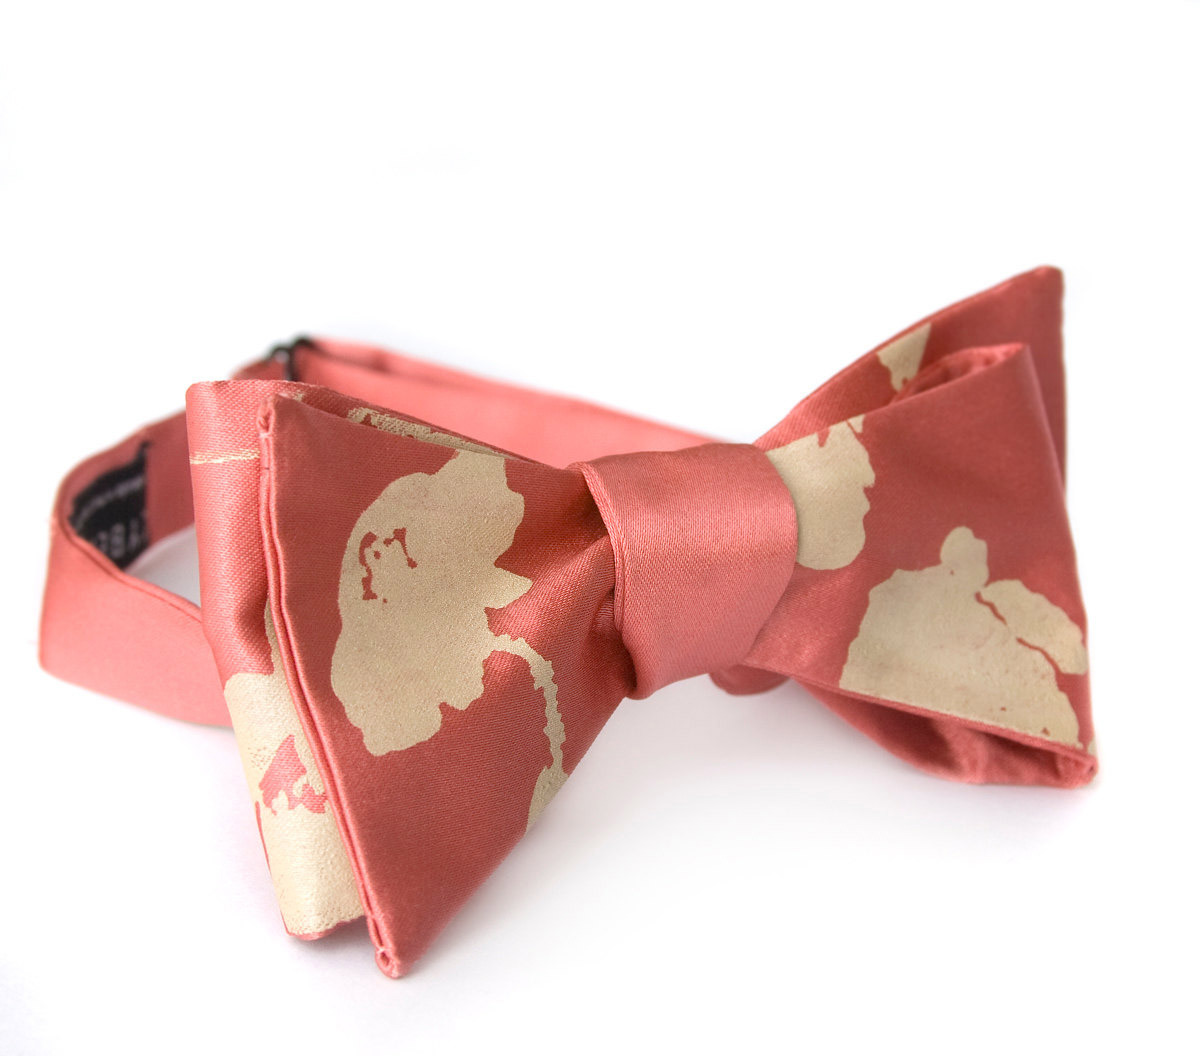 mrbeautie:  This May bloom, check out the dapper floral silk screen bow tie by Cyberoptix Tie Lab. They offer a variety of style in neckwear and accessories all screen printed for the modern gent! Enjoy!